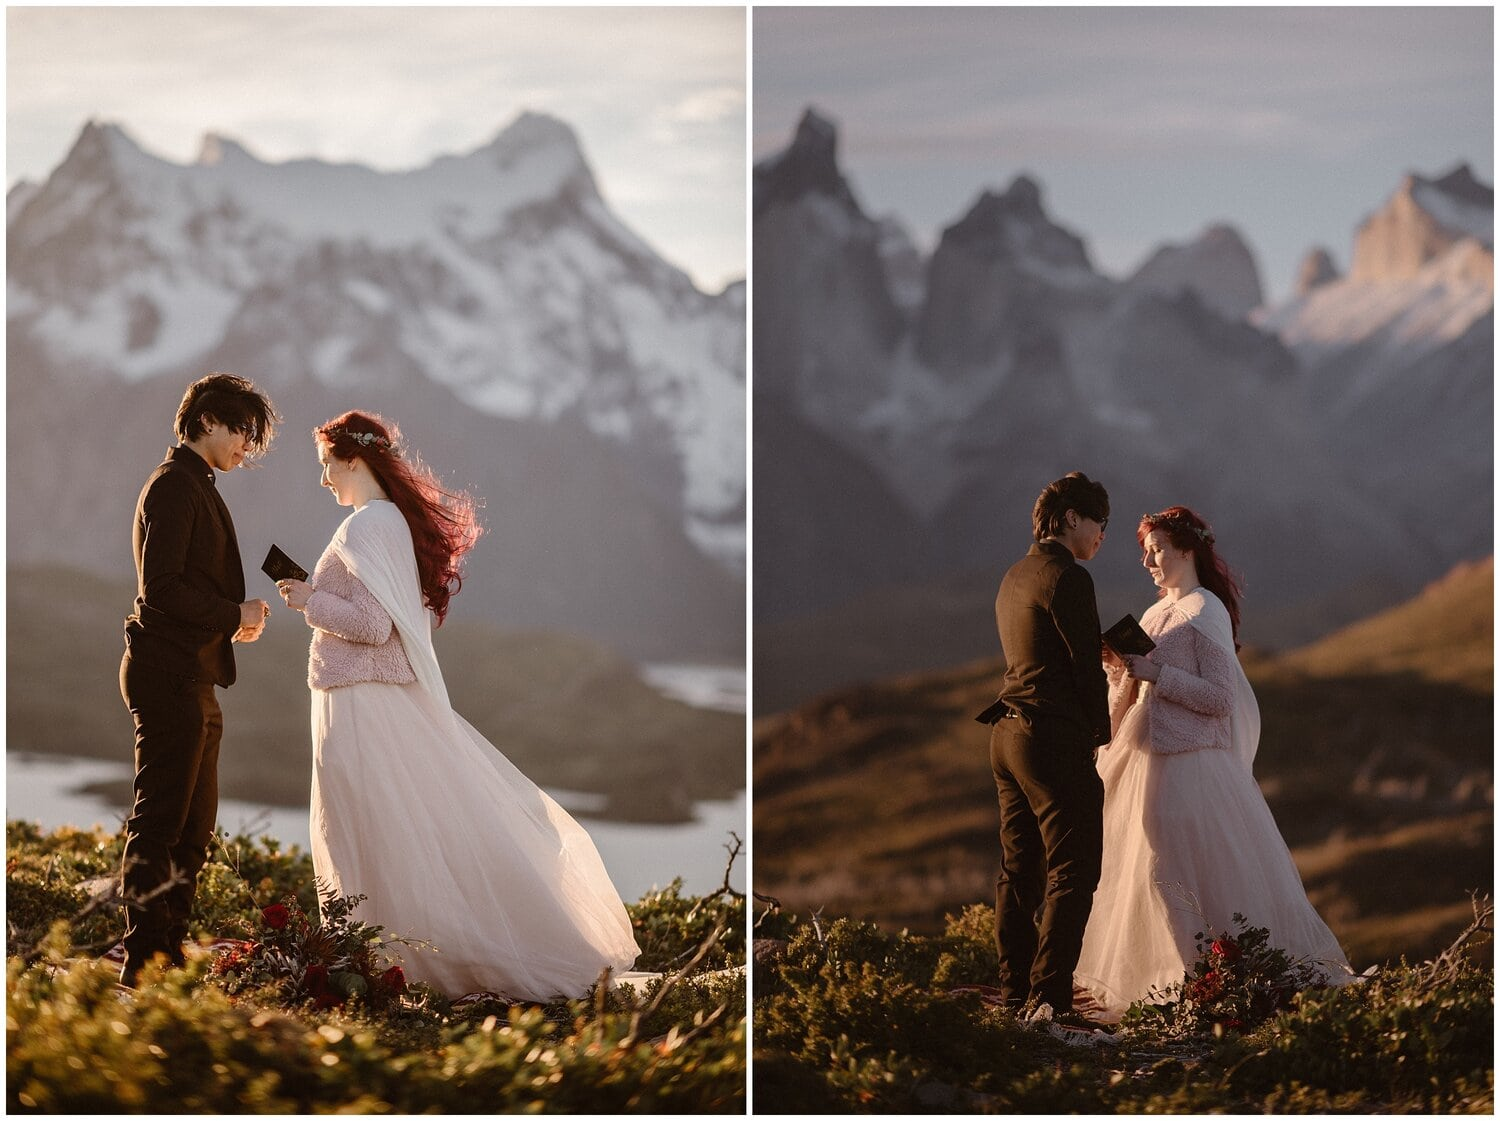 Couple reads vows to each other in Patagonia on their wedding day.